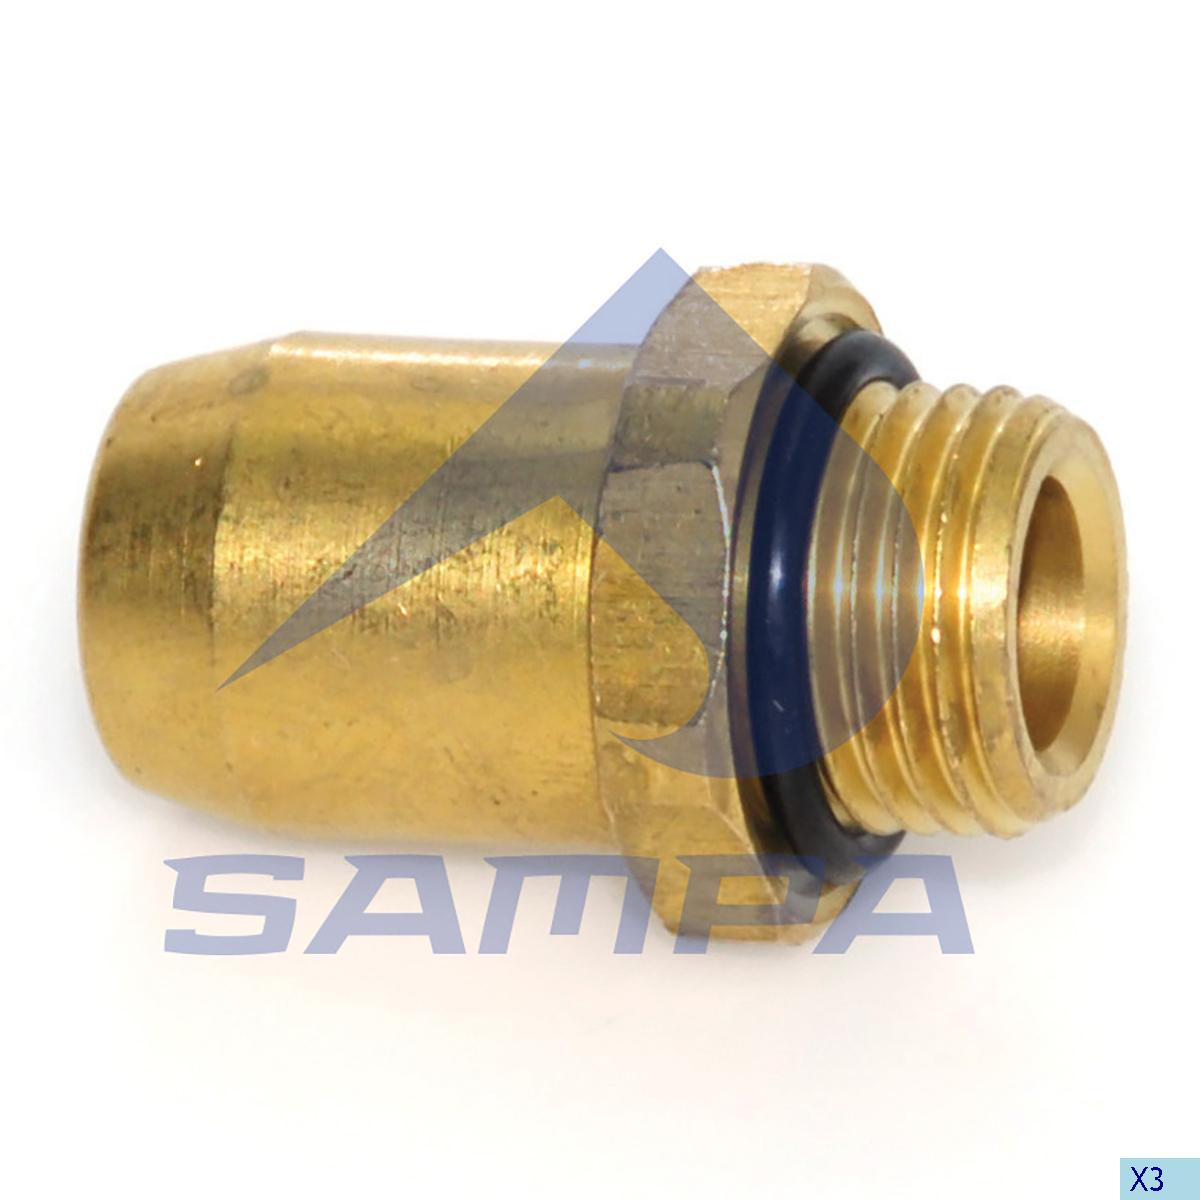 Push in Connector, Universal, Universal Parts